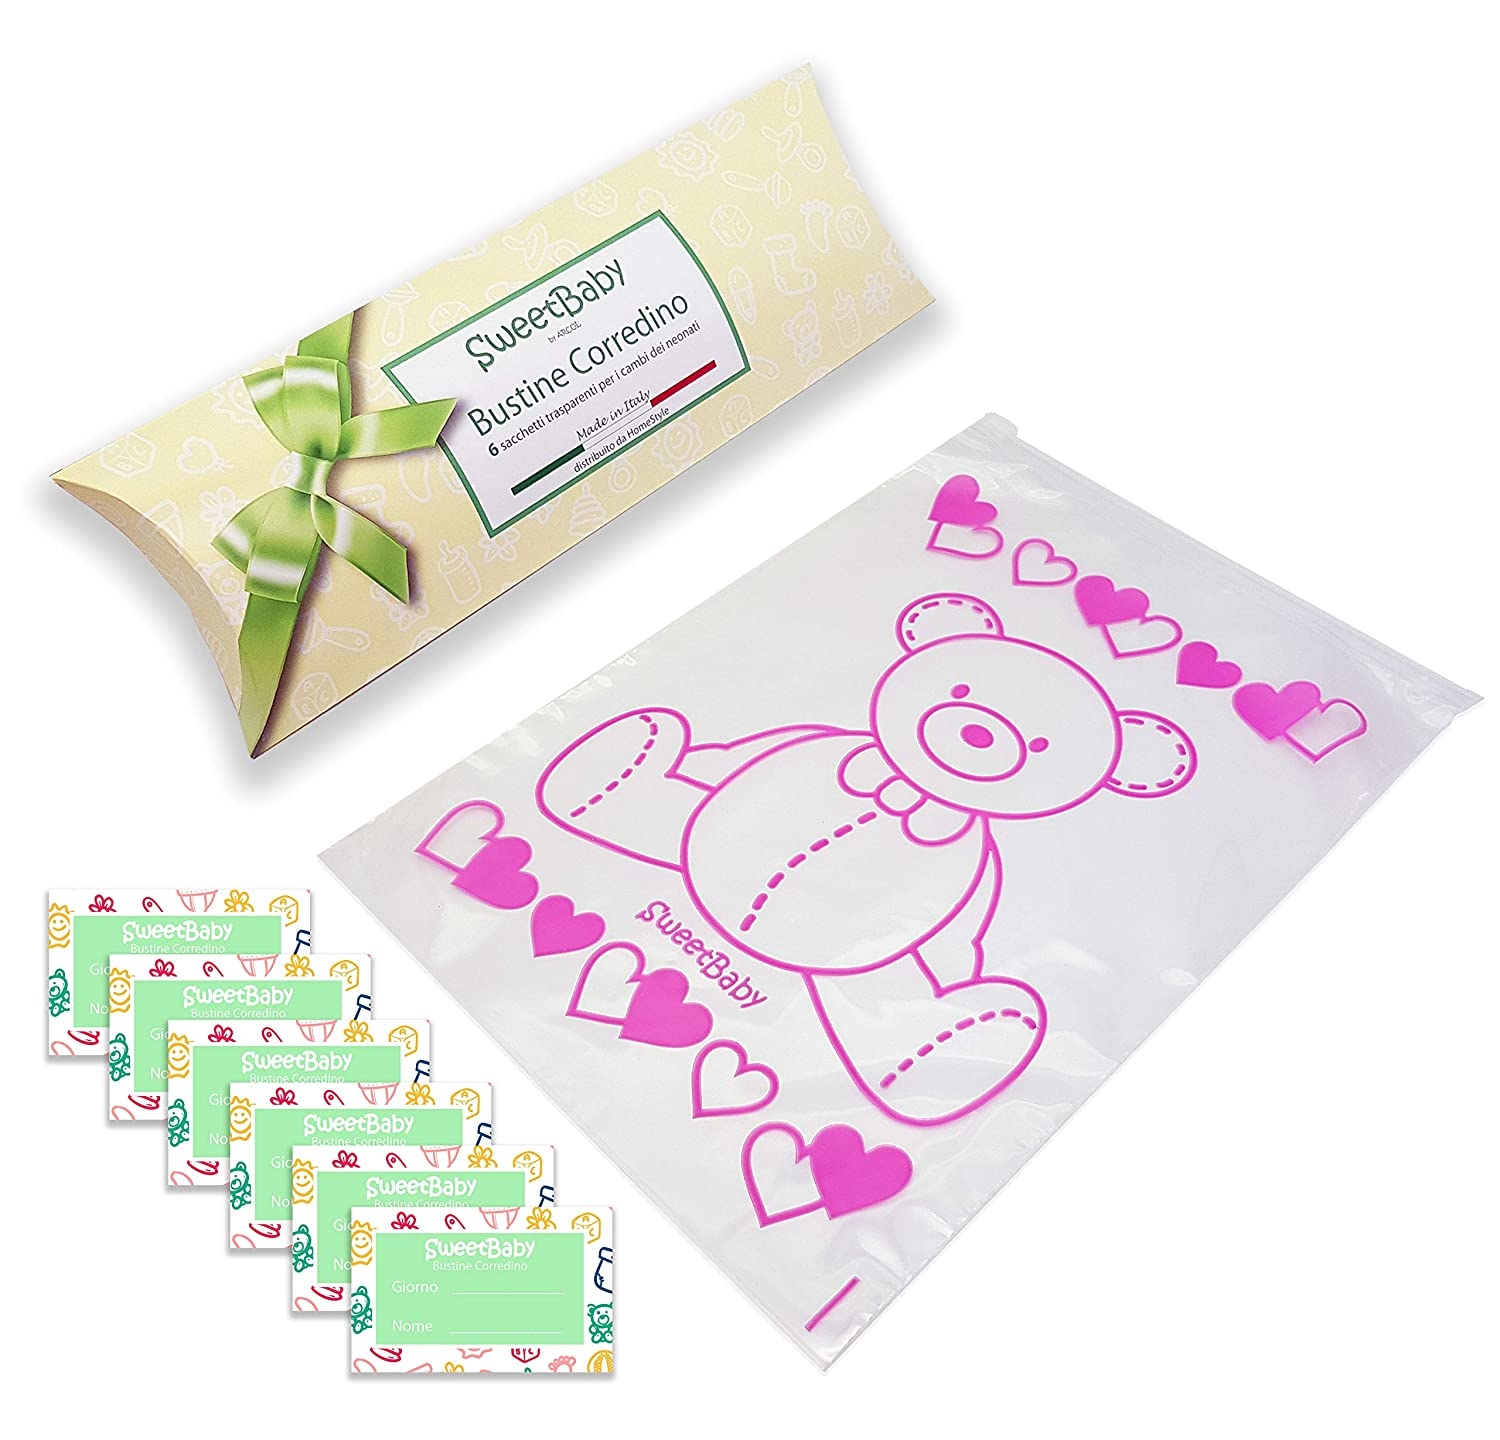 Sweetbaby 6 Layette Bags for The Newborn - Hospital Sachets 6PZ Transparent Envelopes with Cursor Airtight, Closure for Birth Pink ARCOL